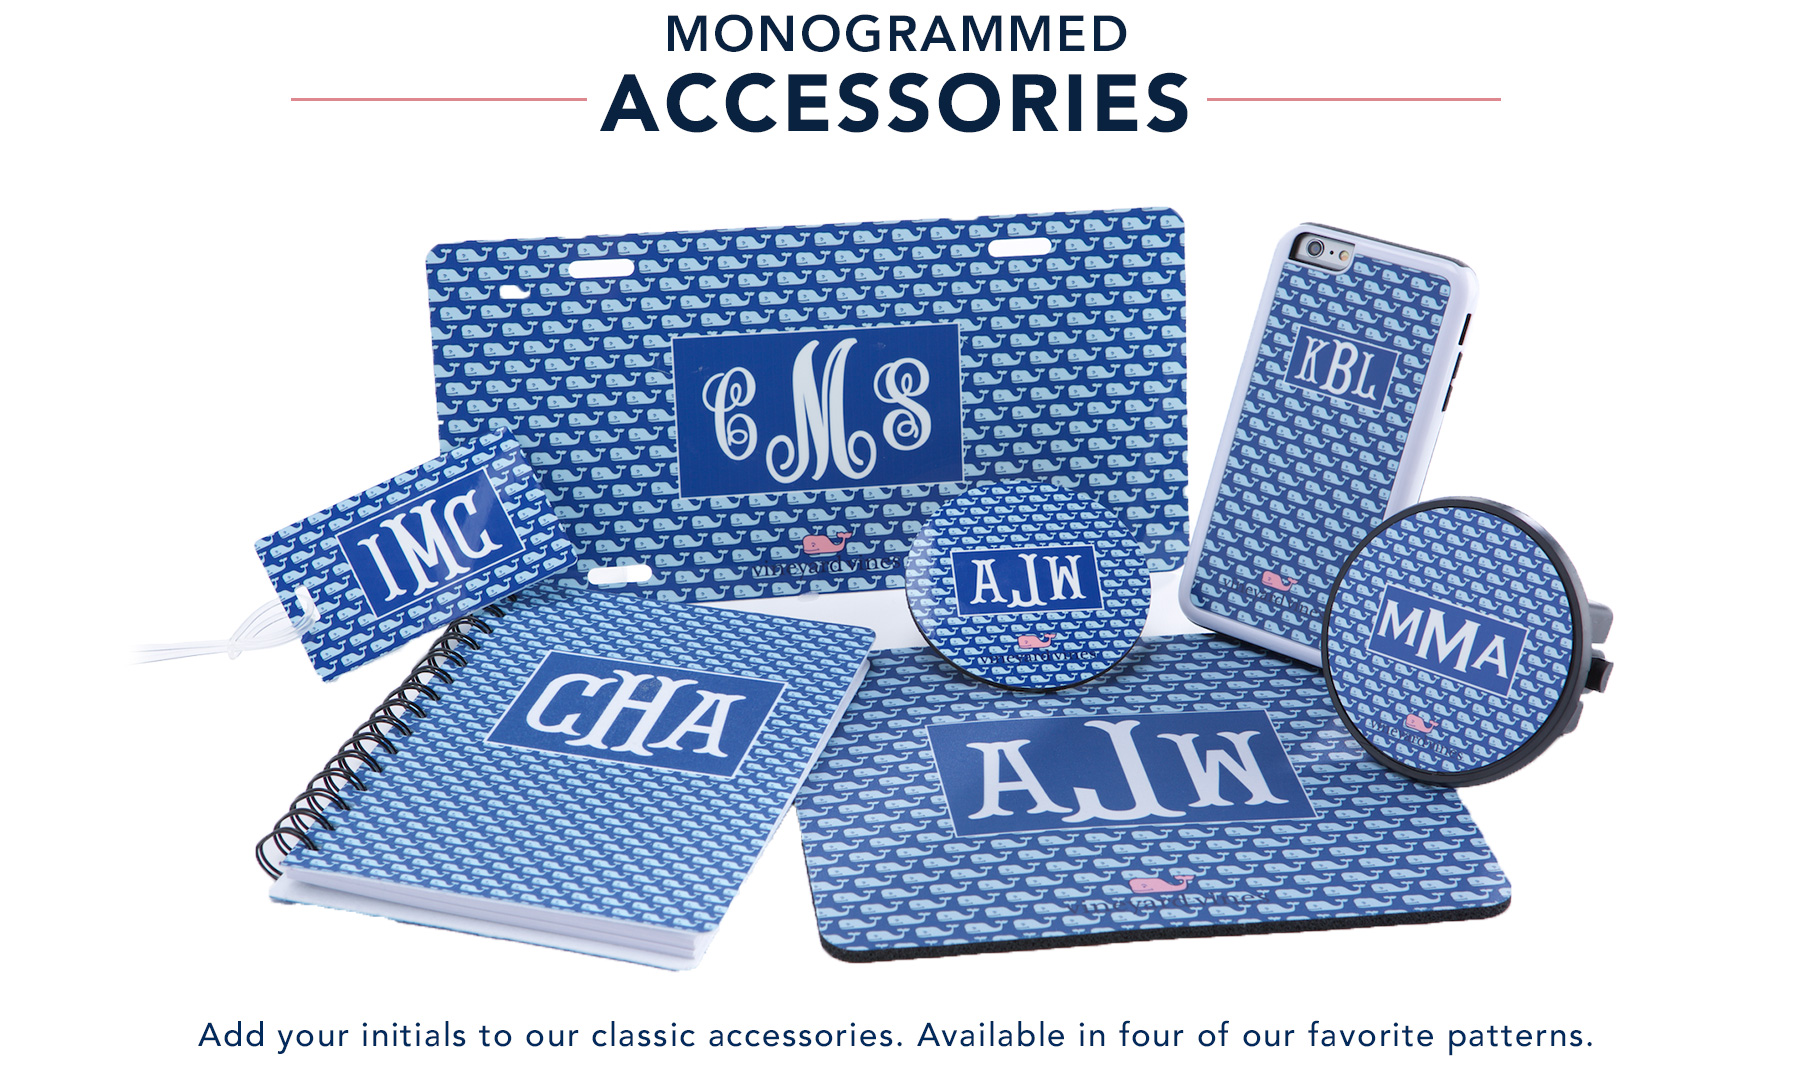 Monogrammed Accessories: Add your initials to our classic accessories.